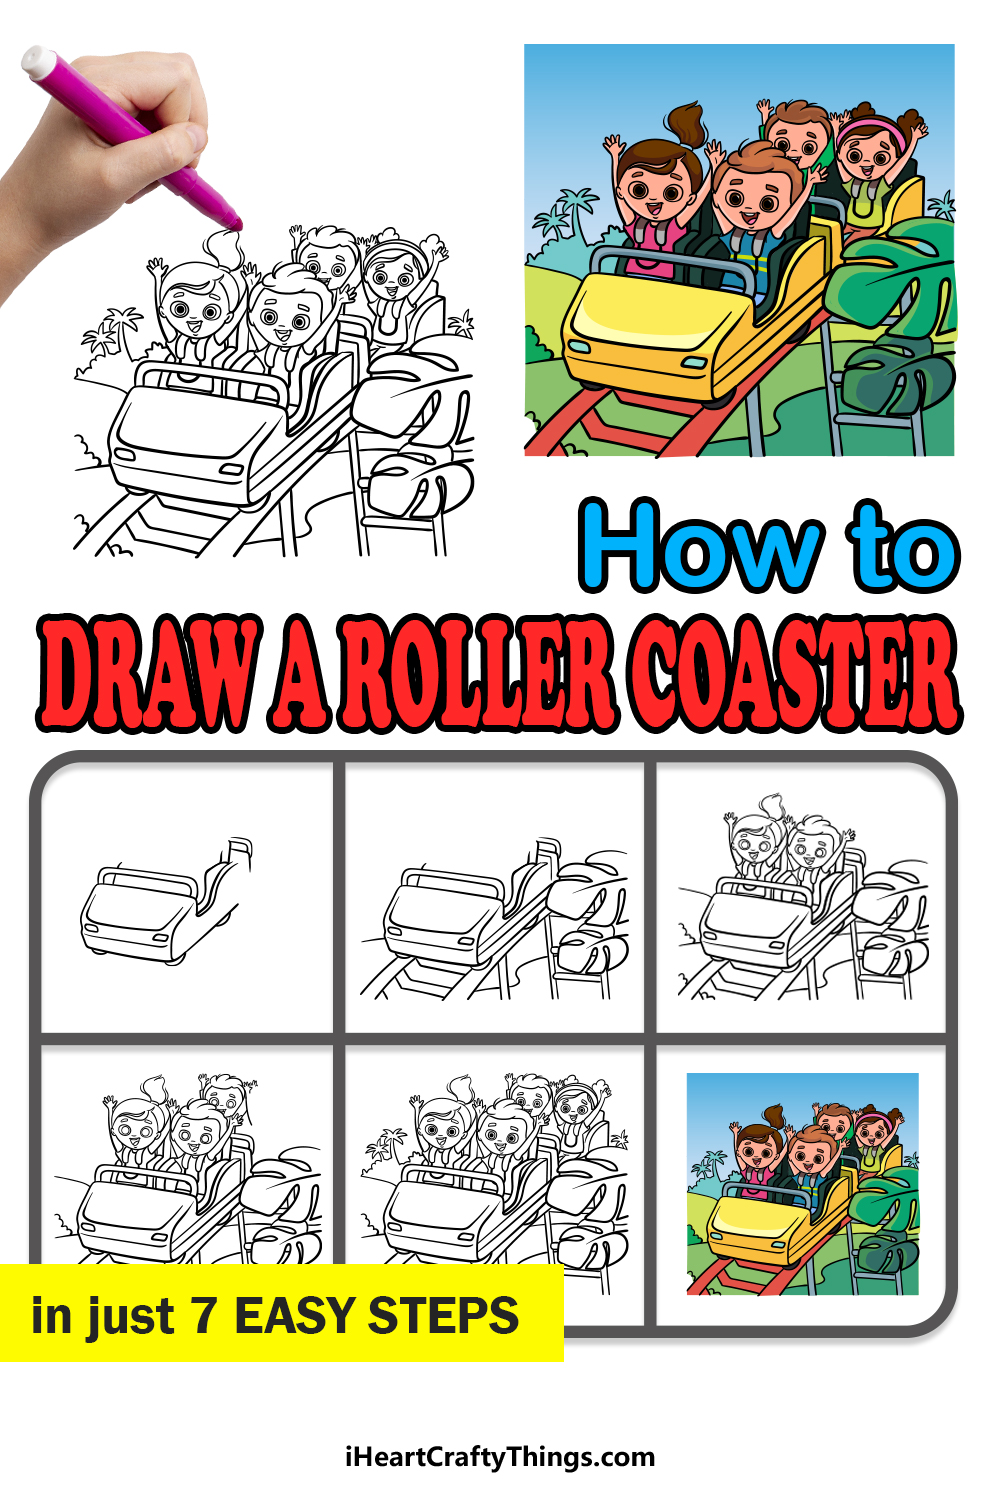 how to draw a roller coaster in 7 easy steps